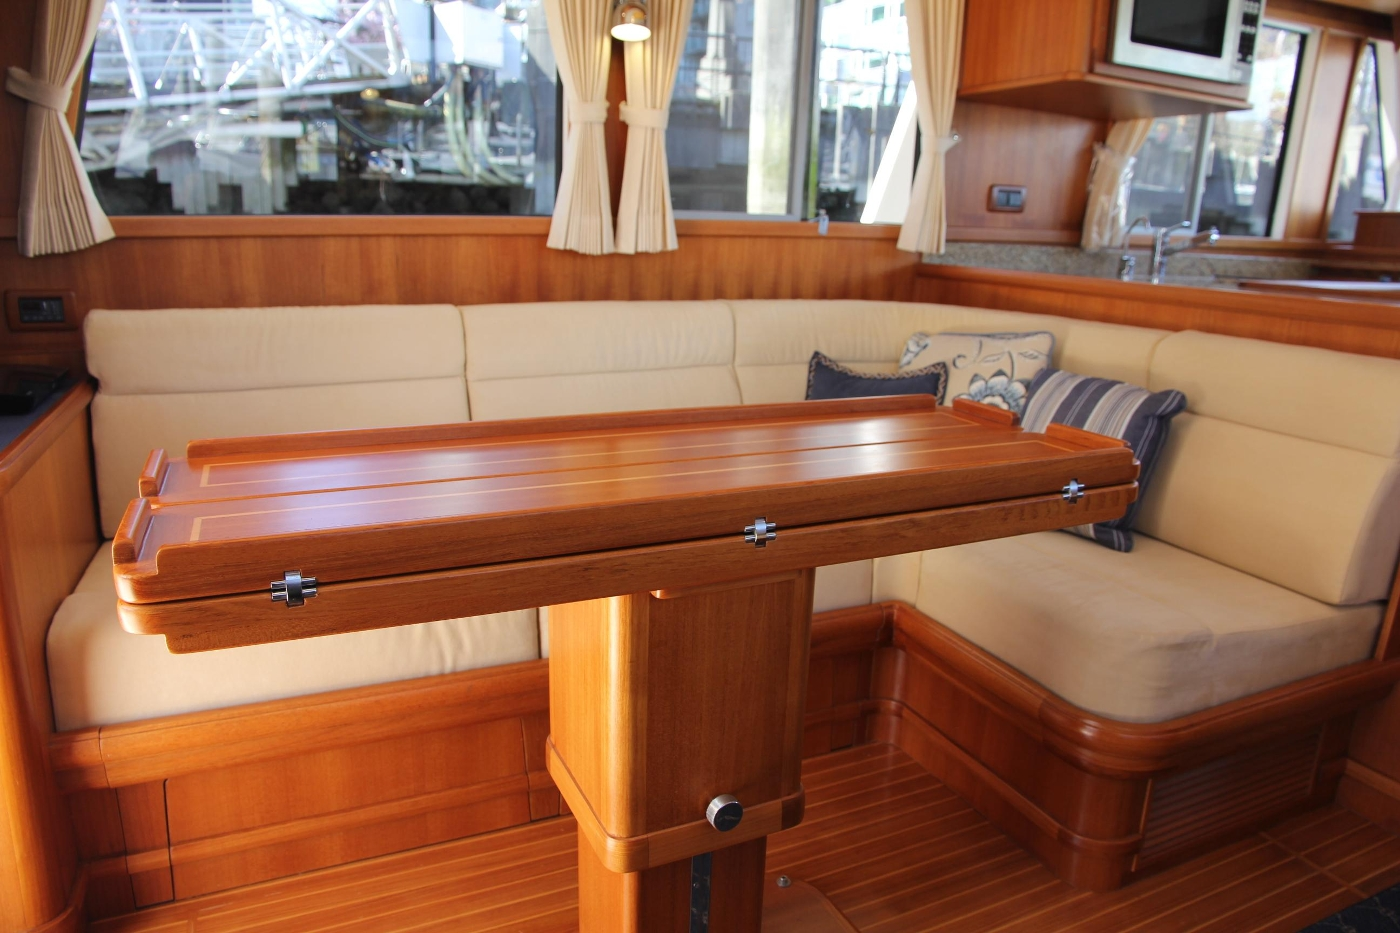 2009 Grand Banks 47 Europa, Hi-Low Folding Table